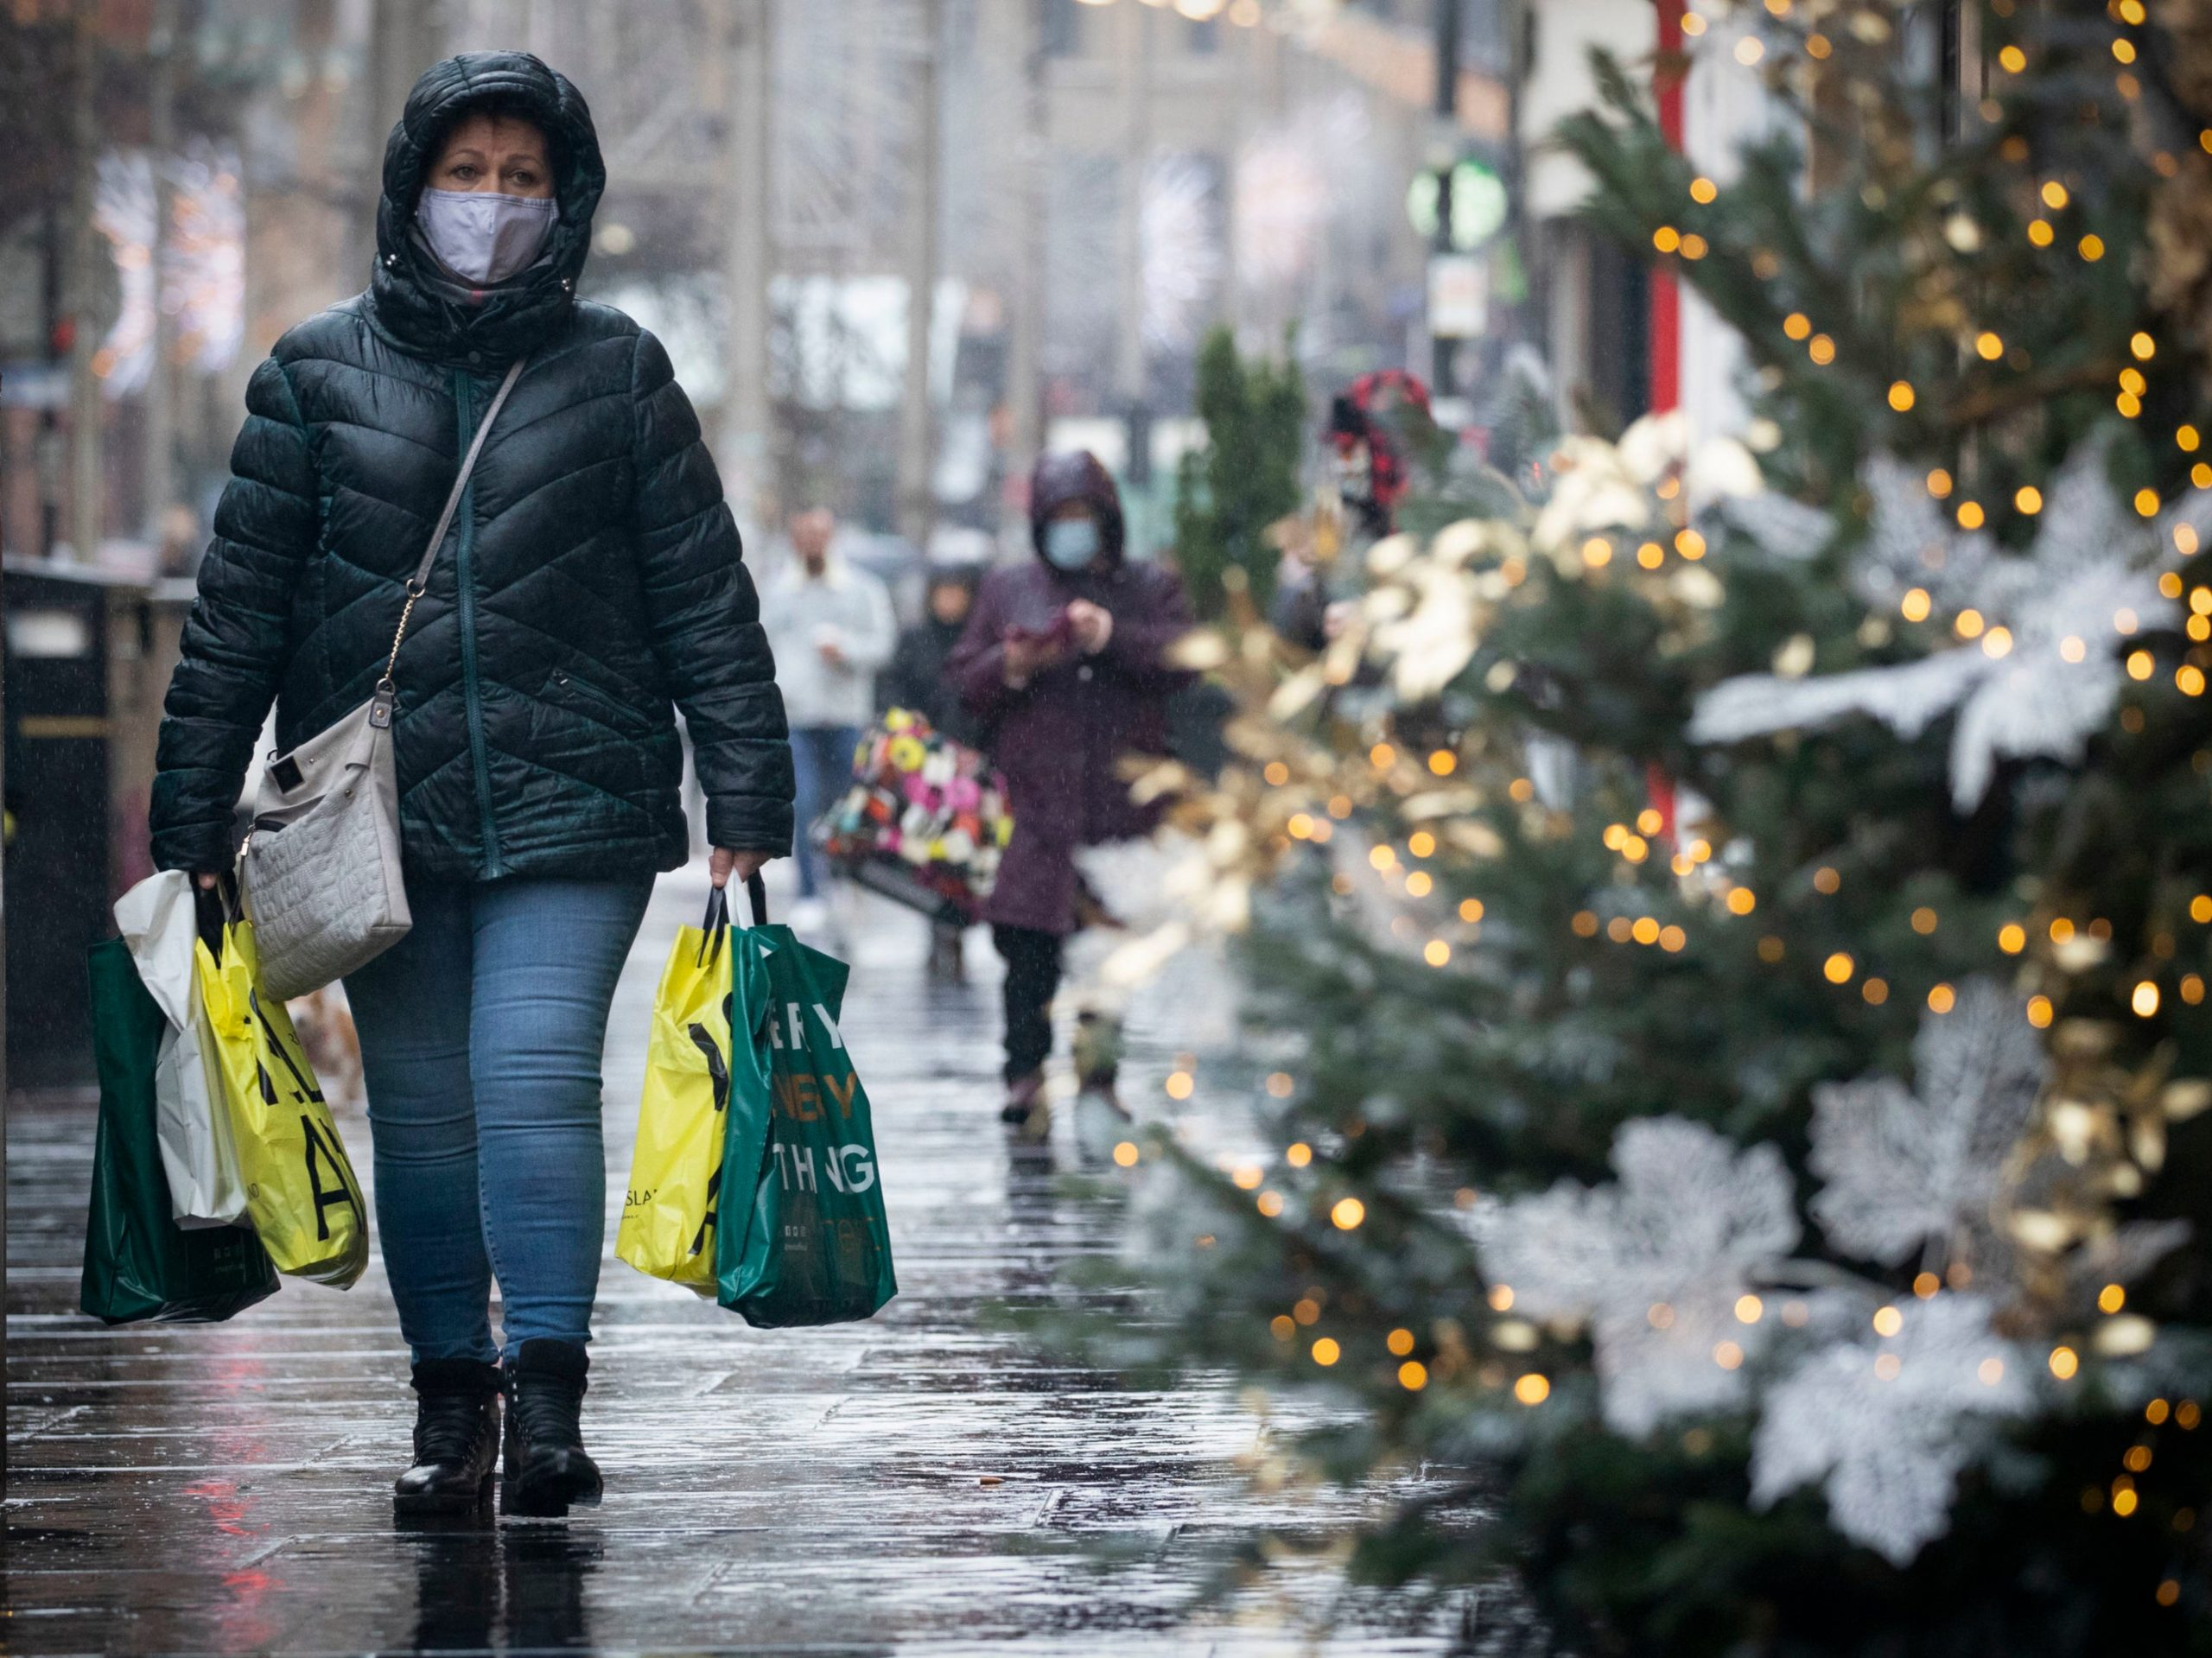 Corona Virus News Live: The latest updates on the UK facing the 'disaster' of Christmas